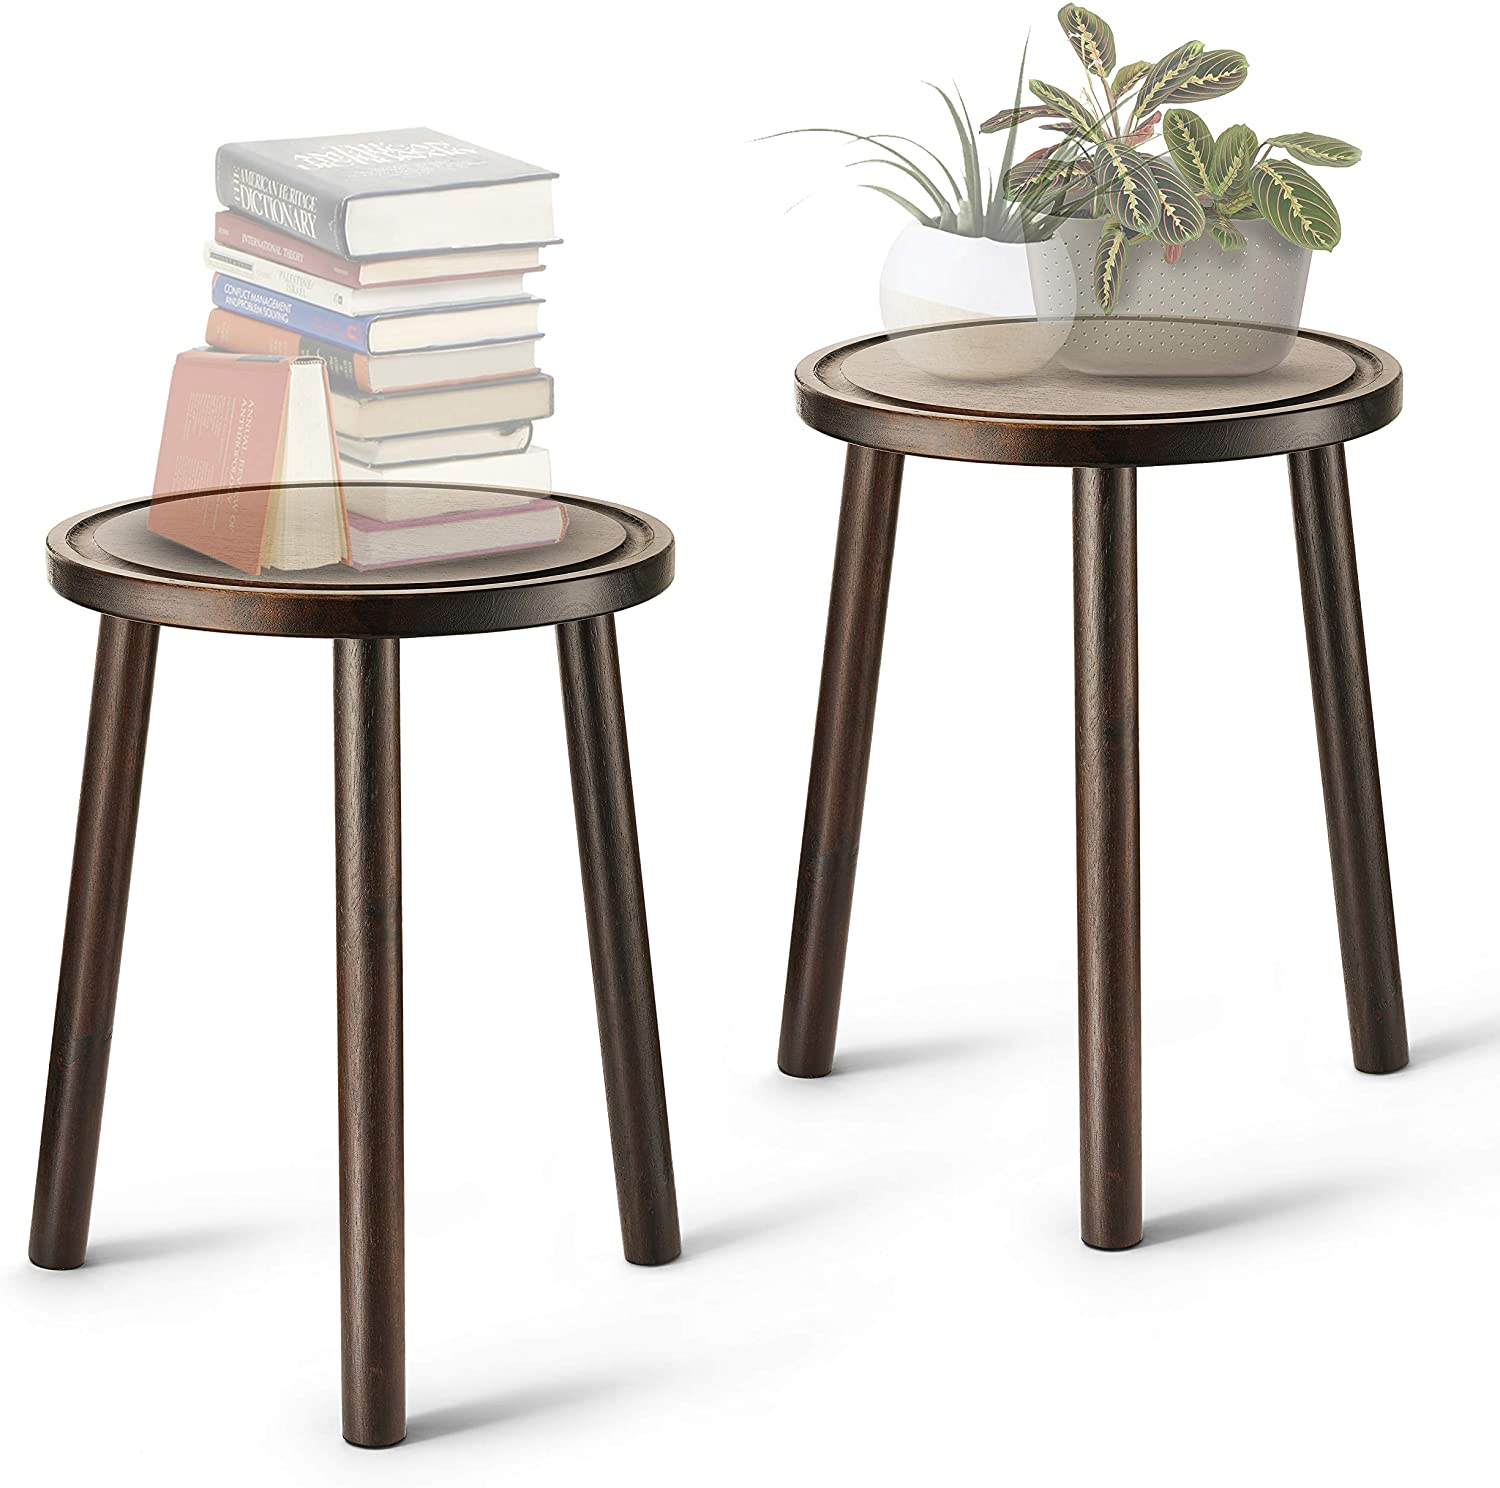 LITADA Wood Plant Stands